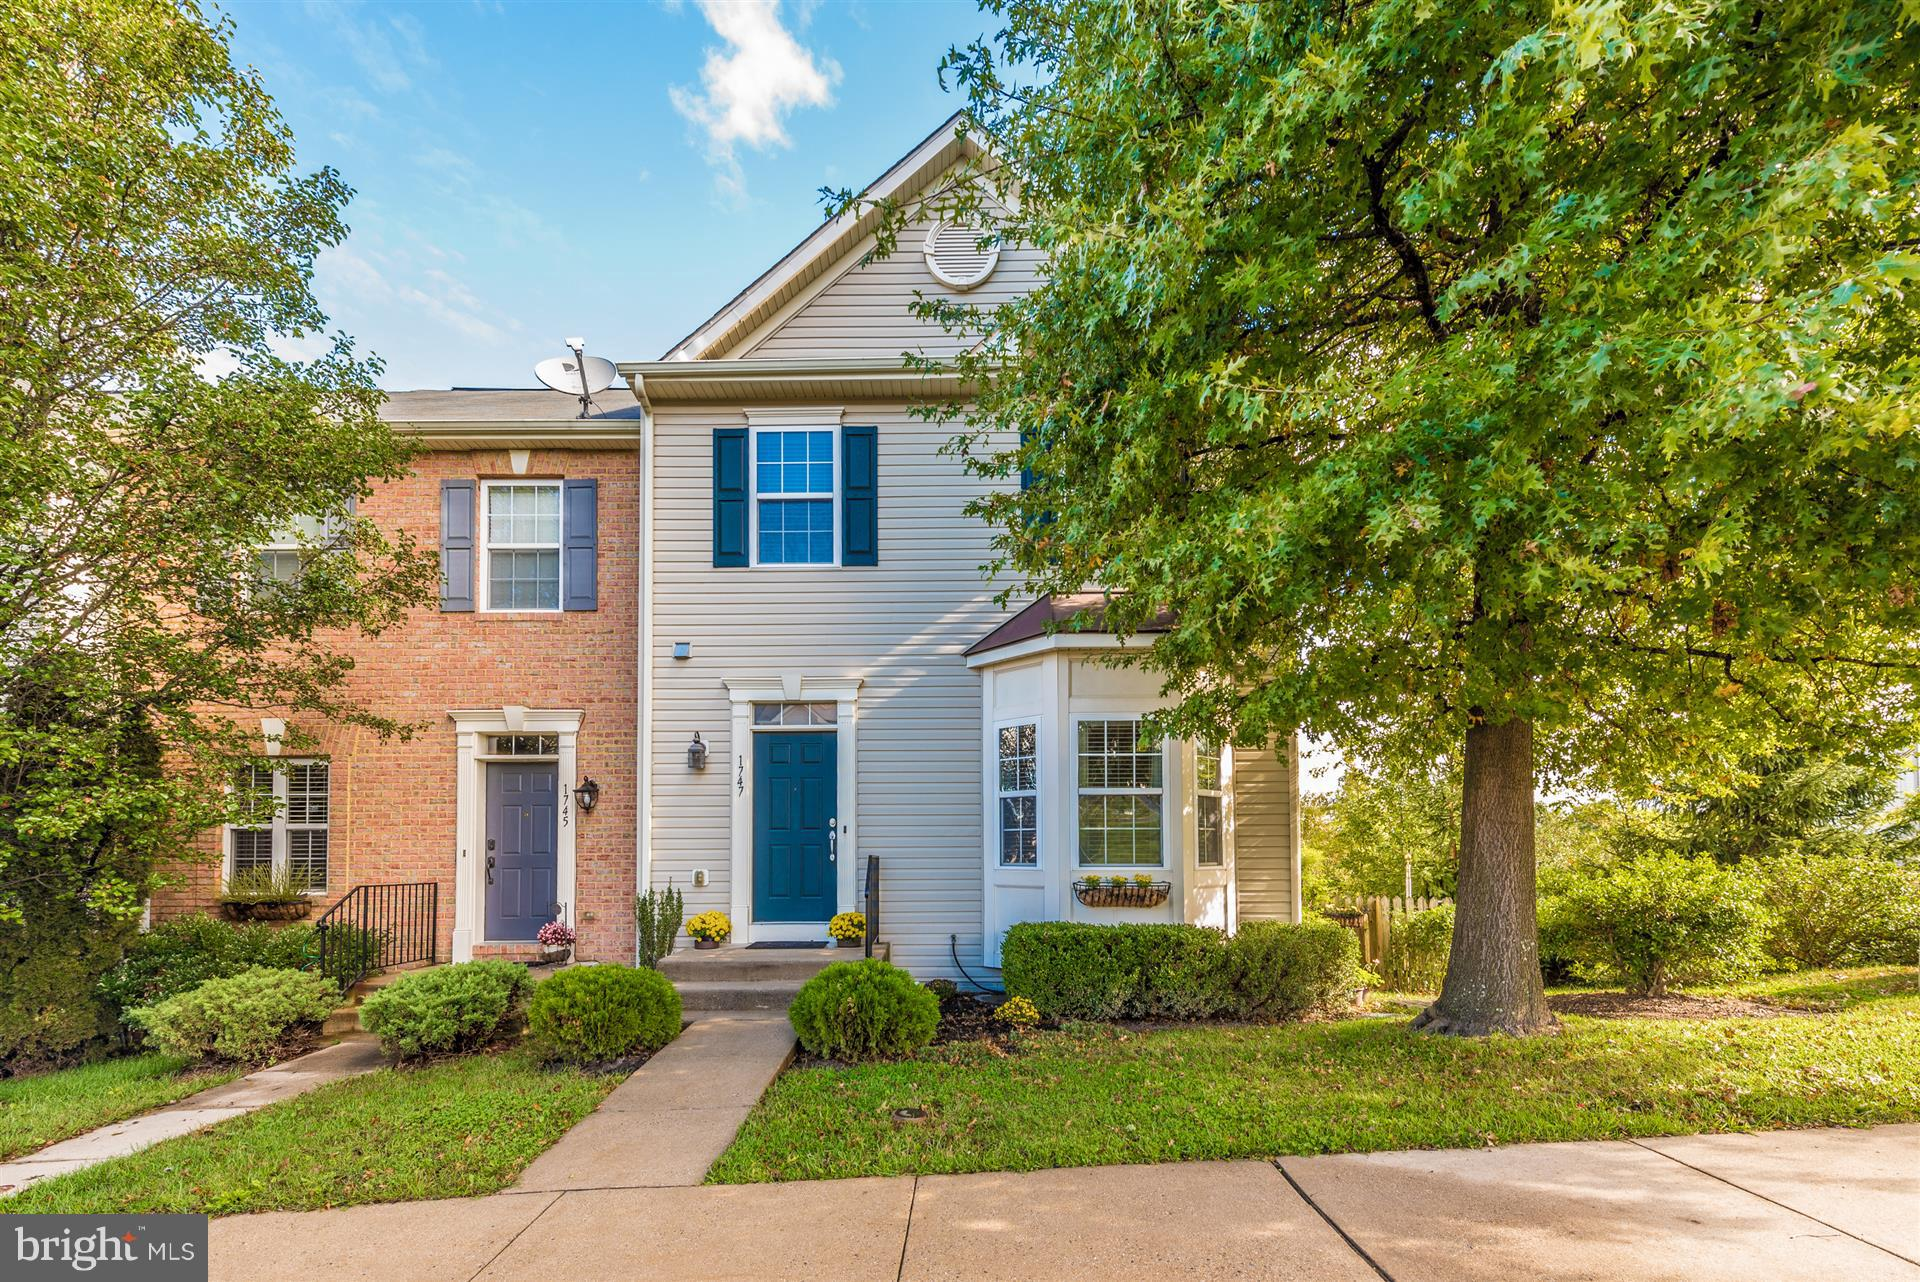 Welcome to this Immaculate, Turn-Key End Unit Townhome in Twin Arch Crossing backing to Common Area